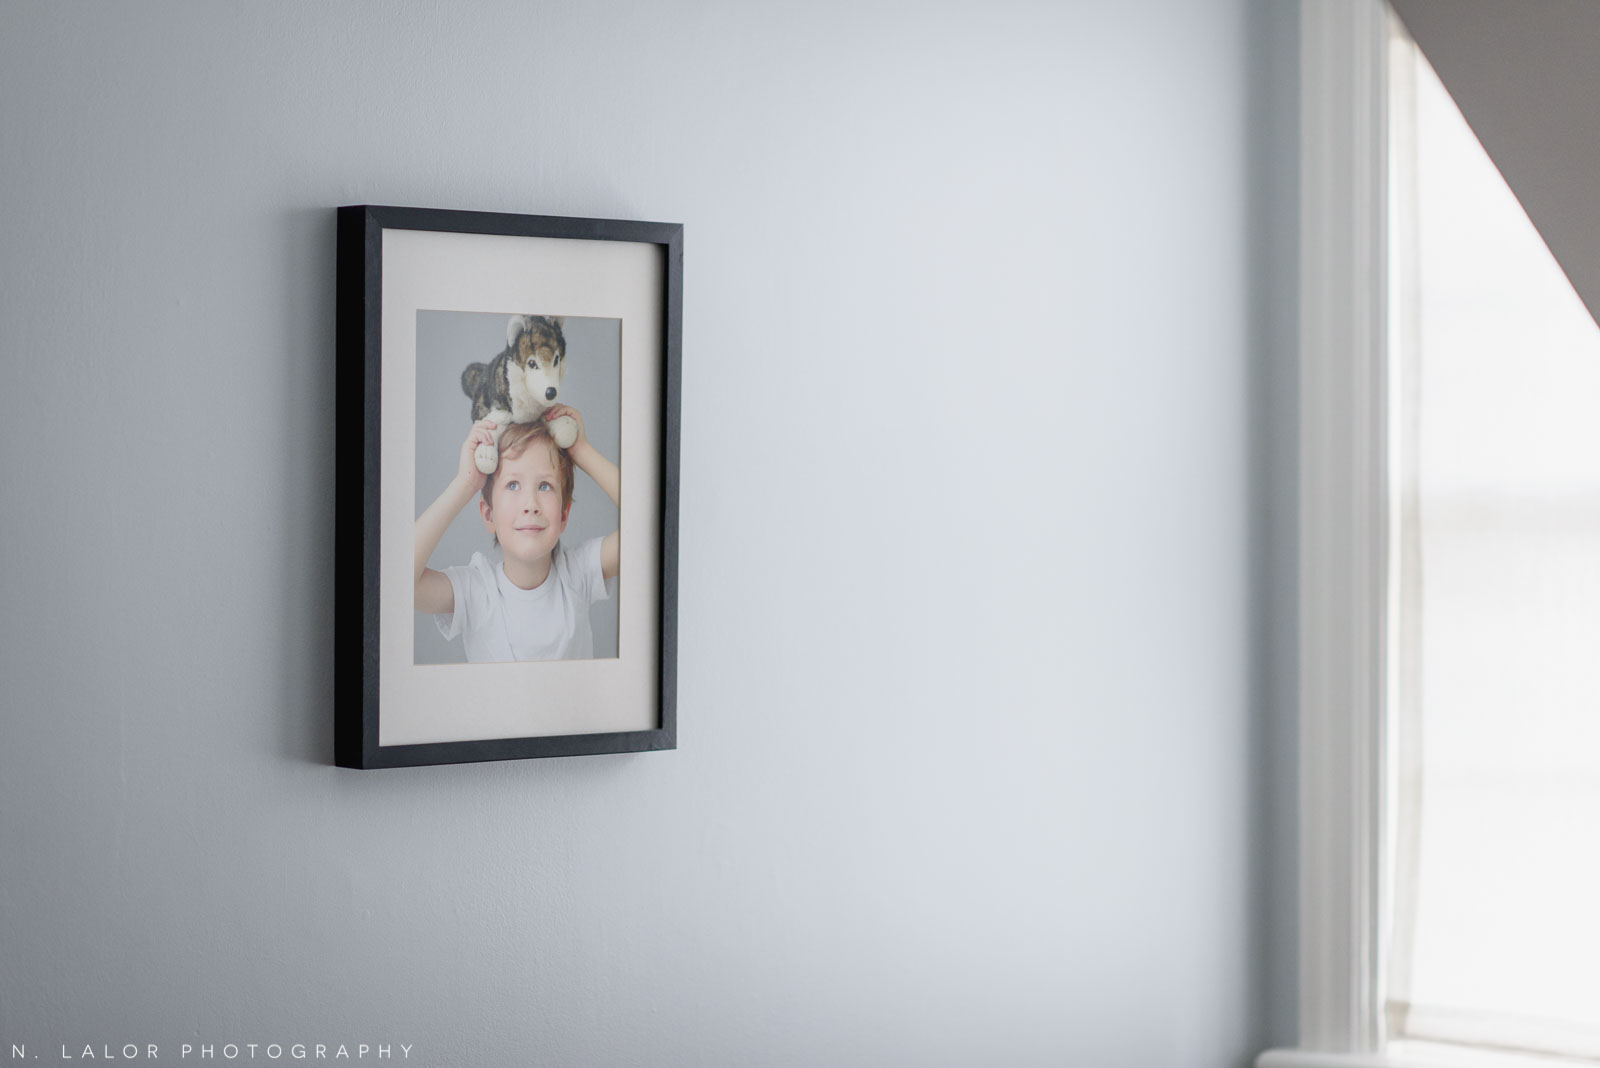 Image of a framed photograph in a child's room. Photograph by N. Lalor Photography.